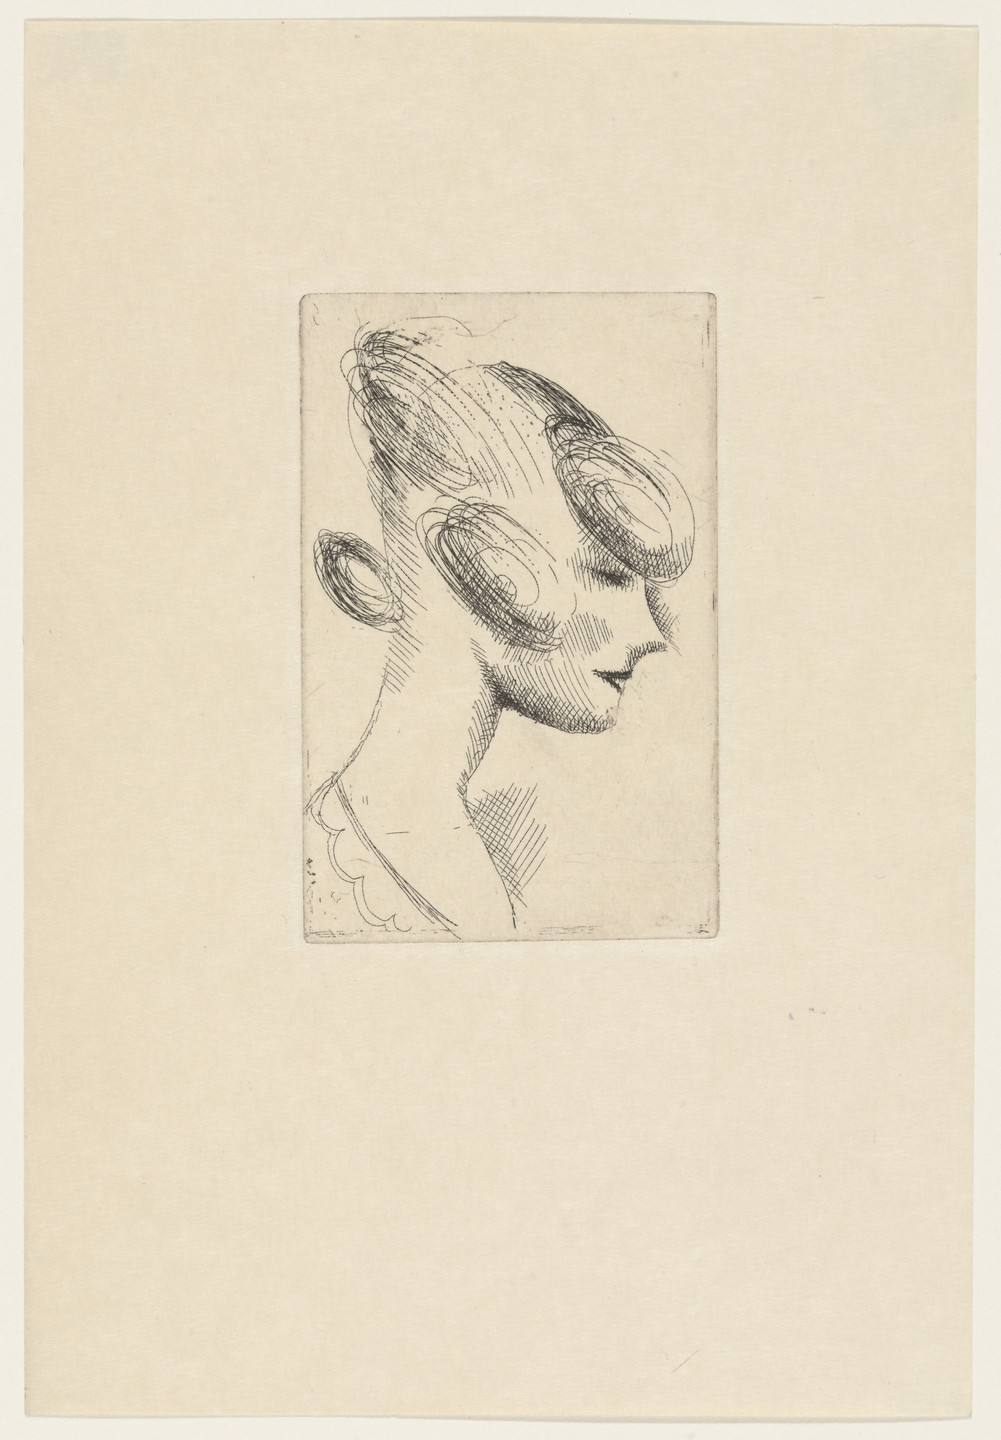 Elie Nadelman. Female Head from The Drypoints of Elie Nadelman. 1951, published 1952